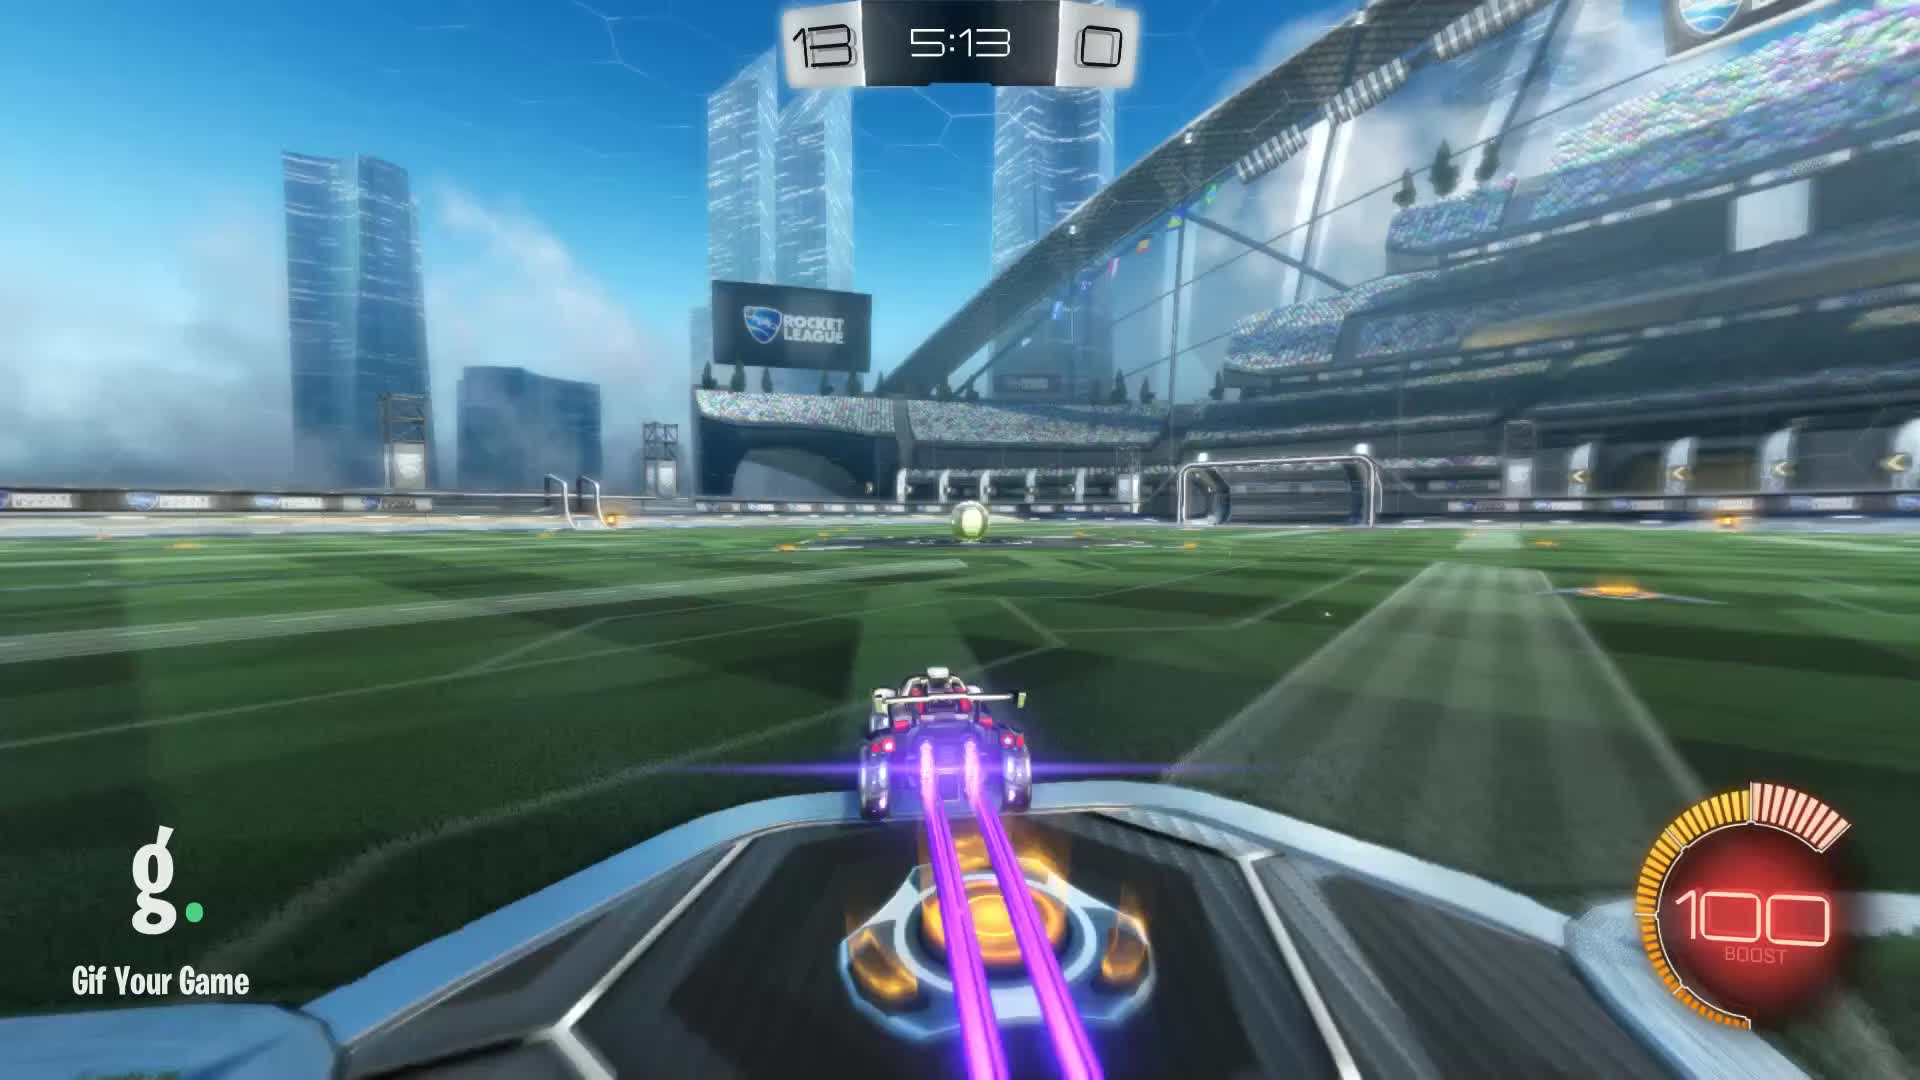 Fireware, Gif Your Game, GifYourGame, Goal, Rocket League, RocketLeague, Goal 1: Fireware GIFs